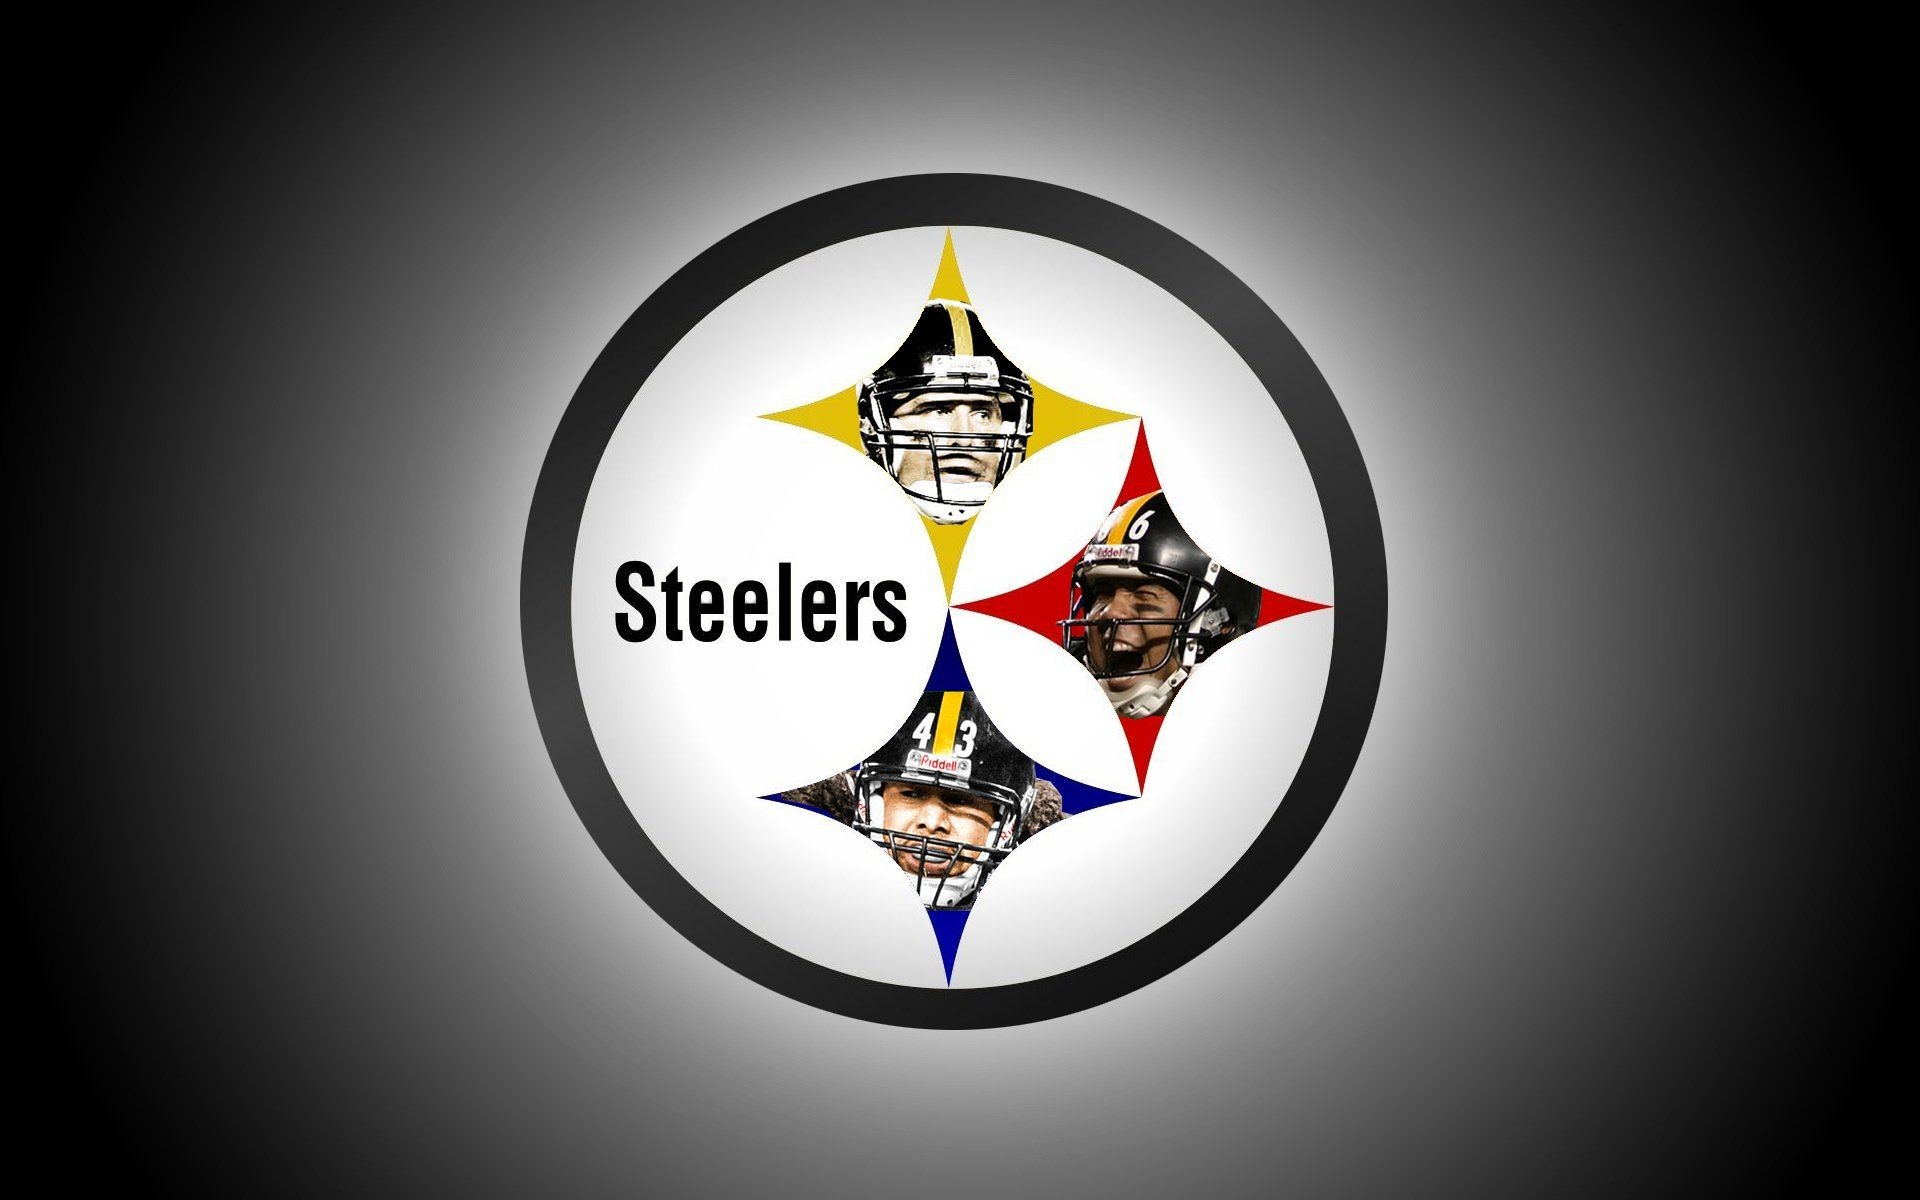 1920x1200 Steelers Logo Wallpaper » WallDevil - Best free HD desktop and .